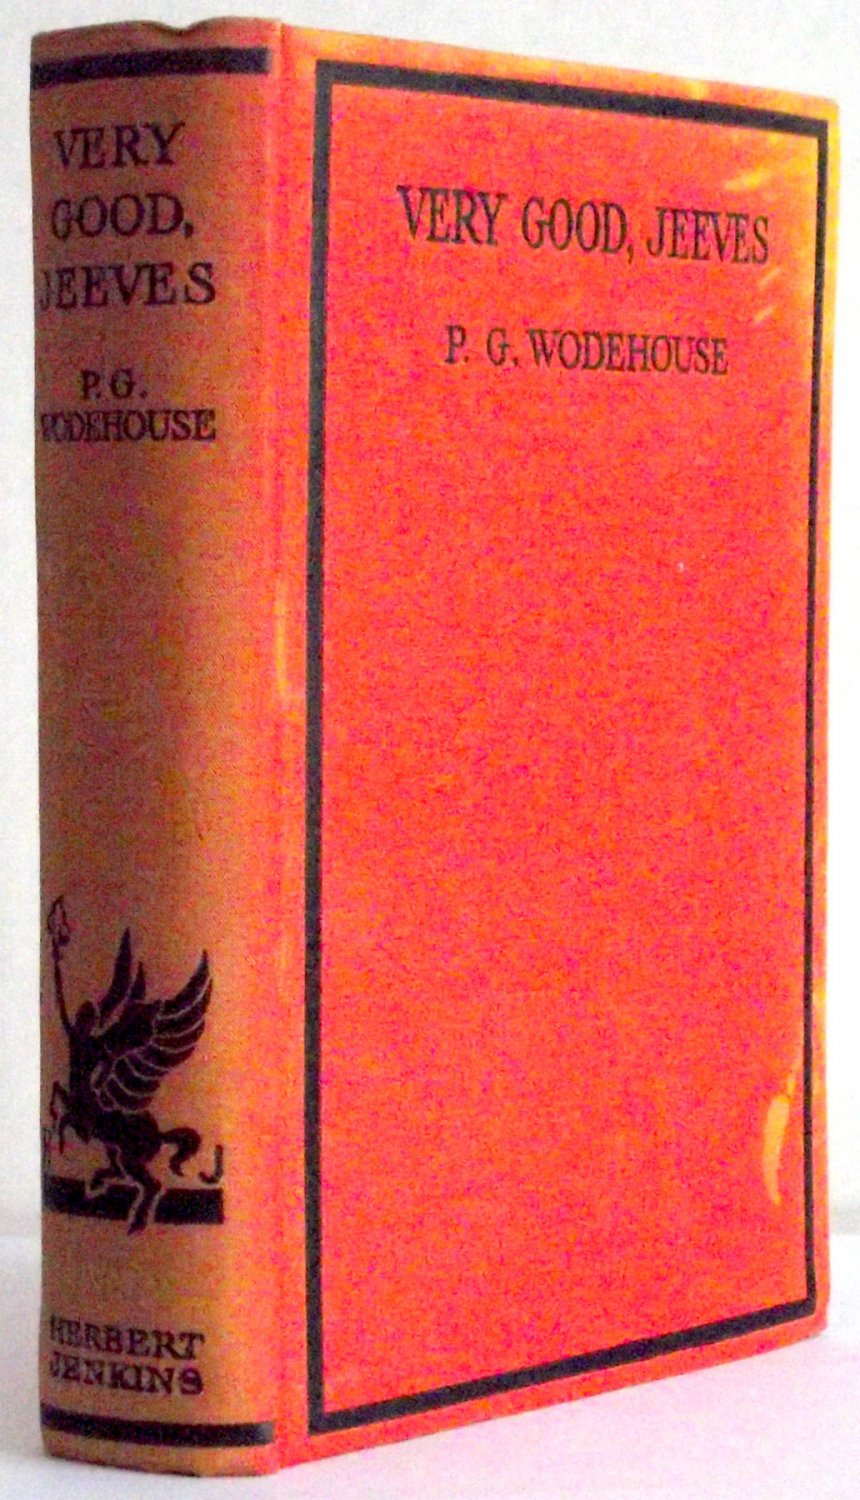 P.G. Wodehouse Very Good Jeeves First Edition 1930